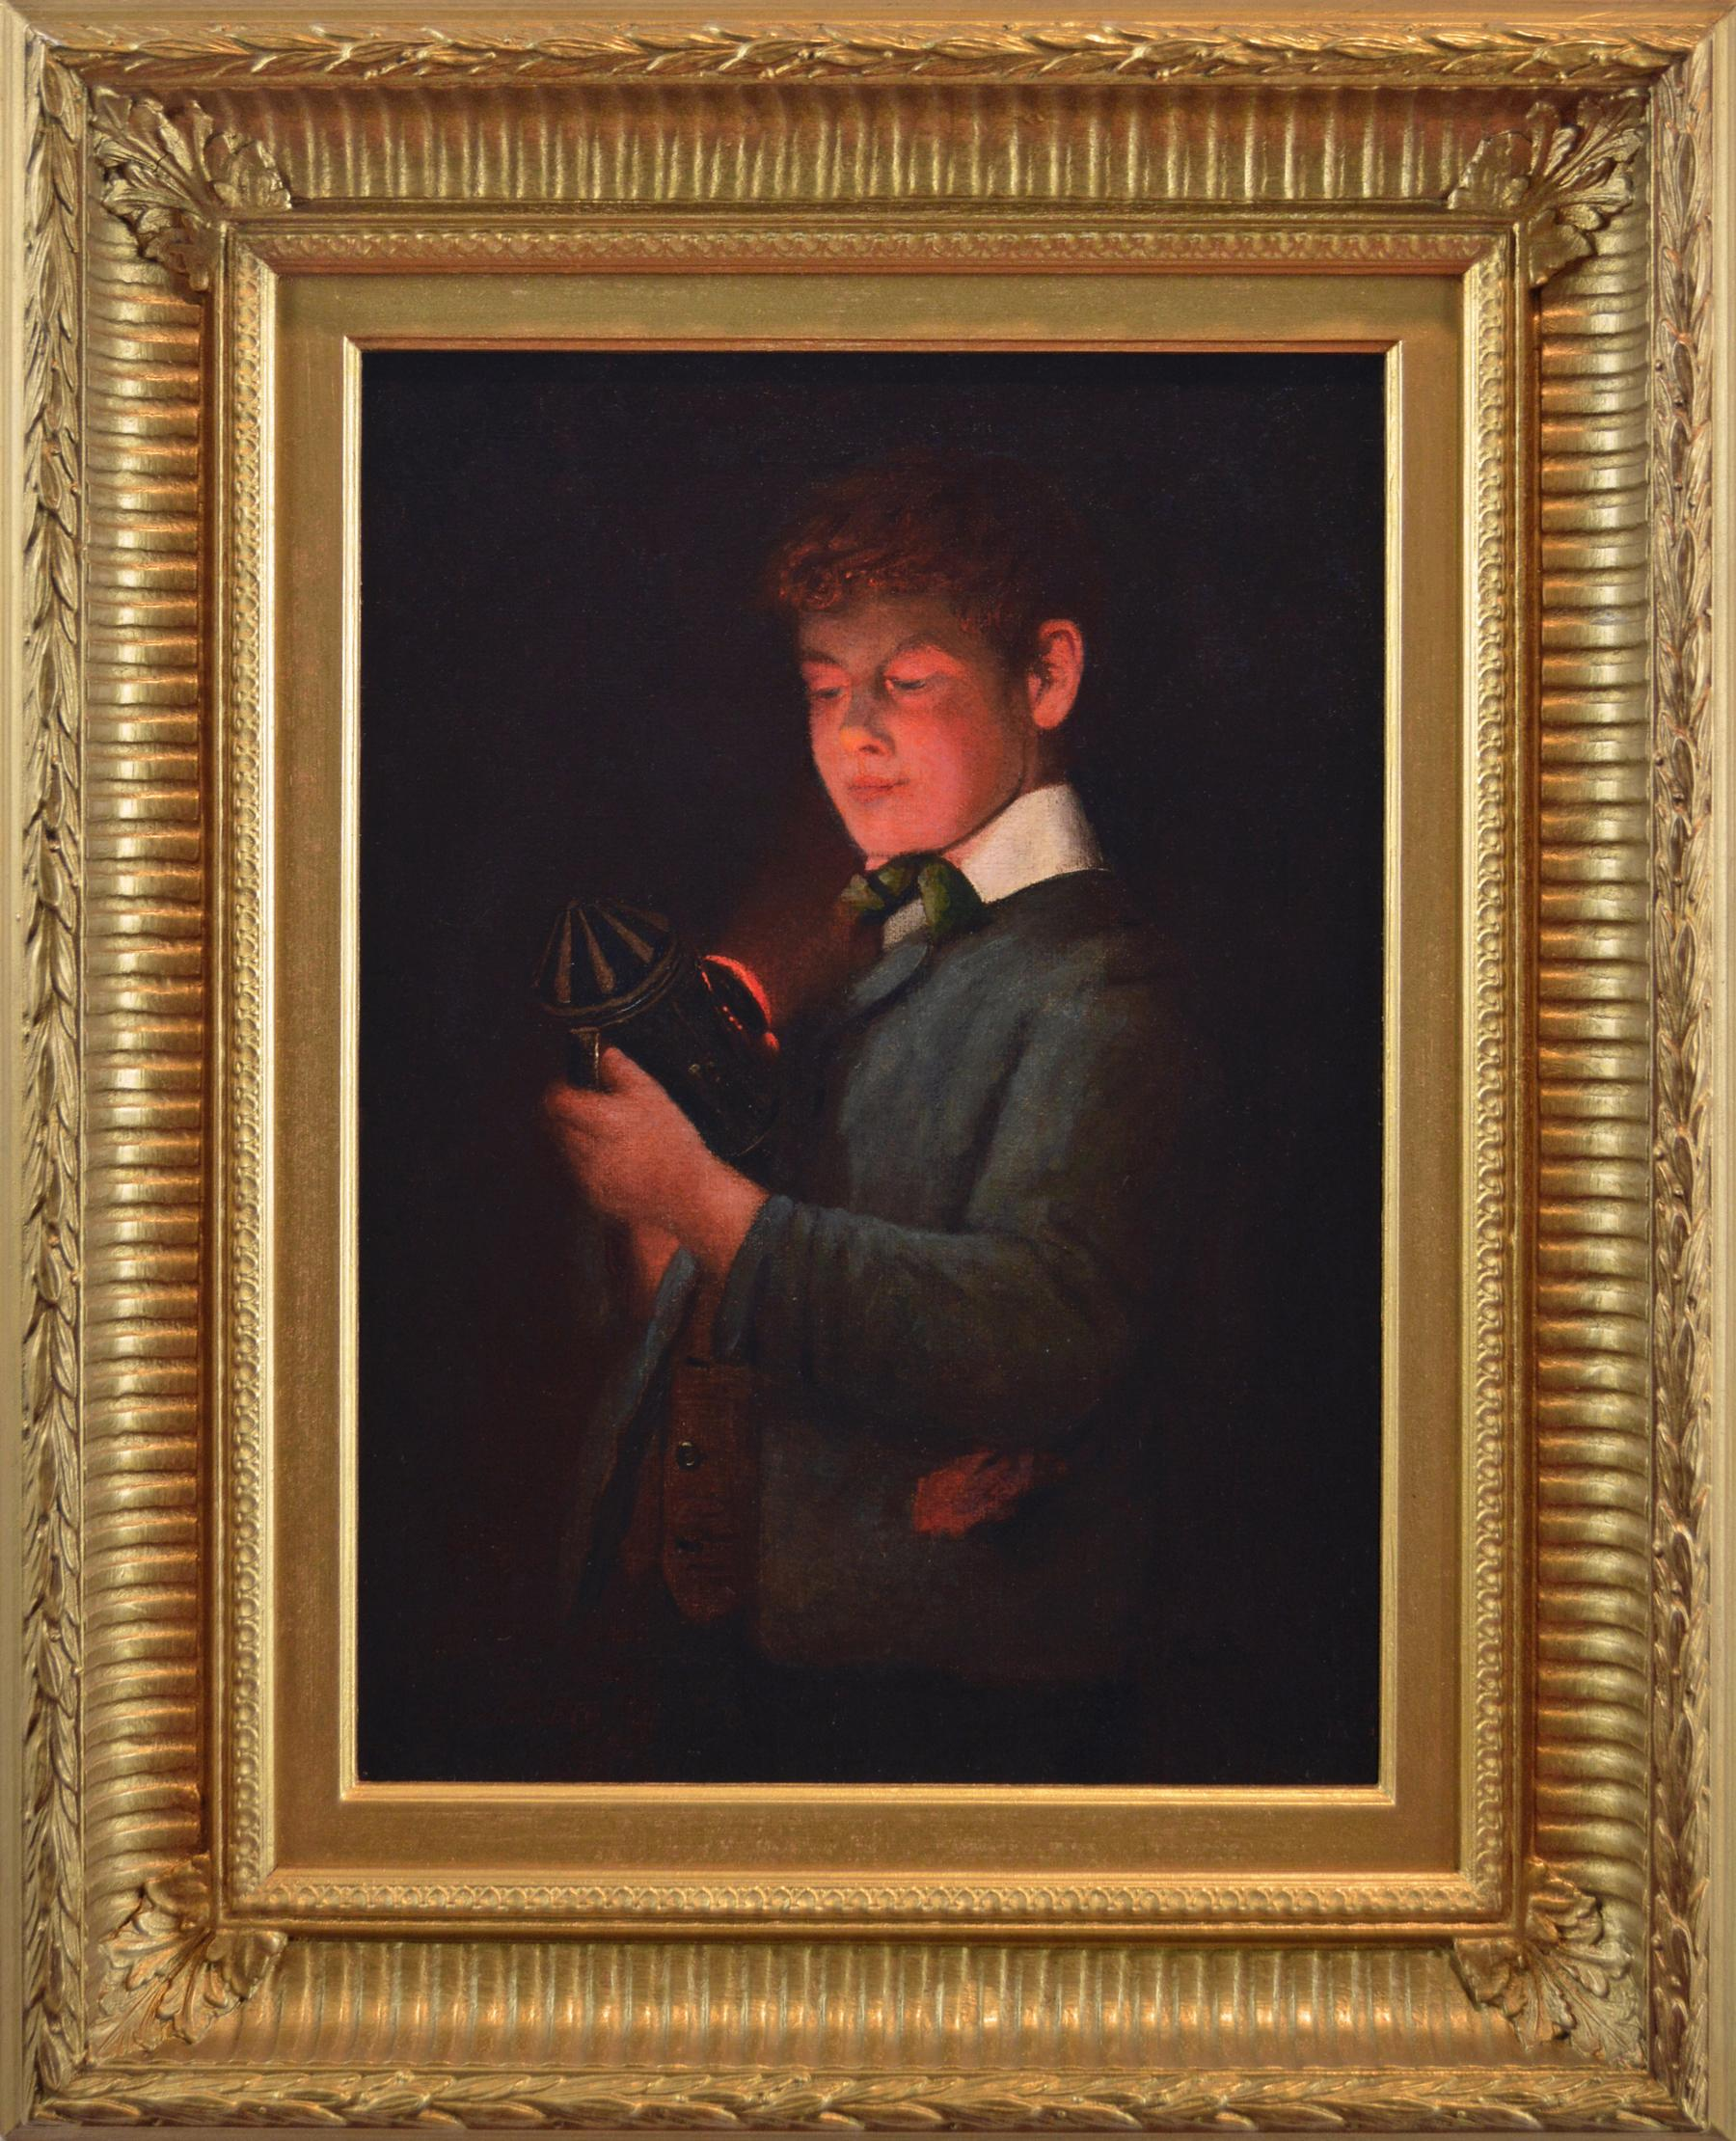 Late 19th Century genre portrait oil painting of a boy holding a lantern